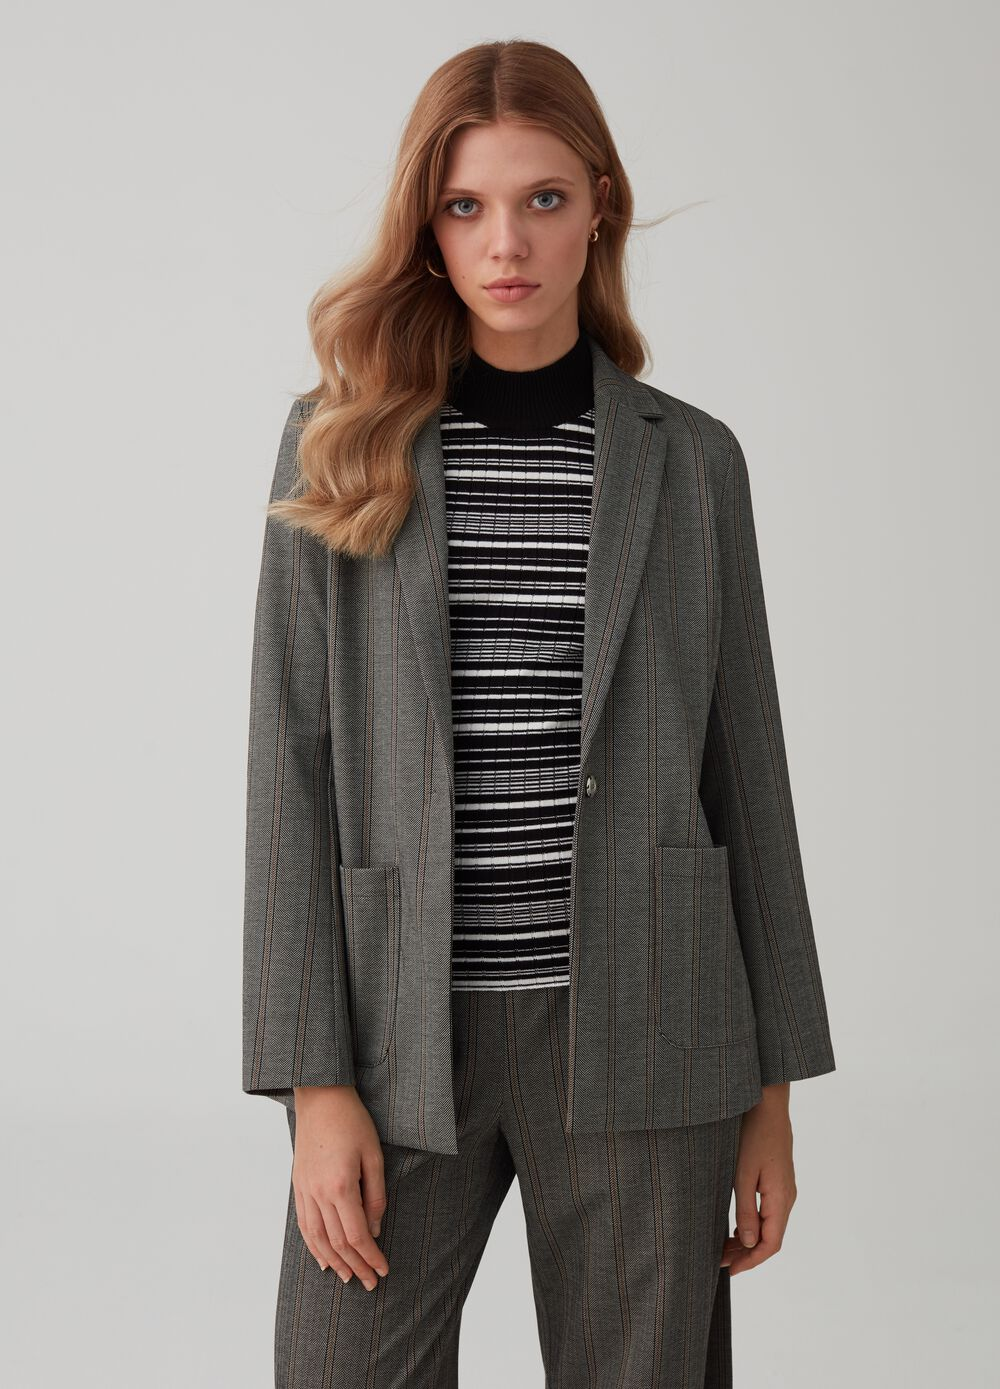 Blazer with belt and striped pockets